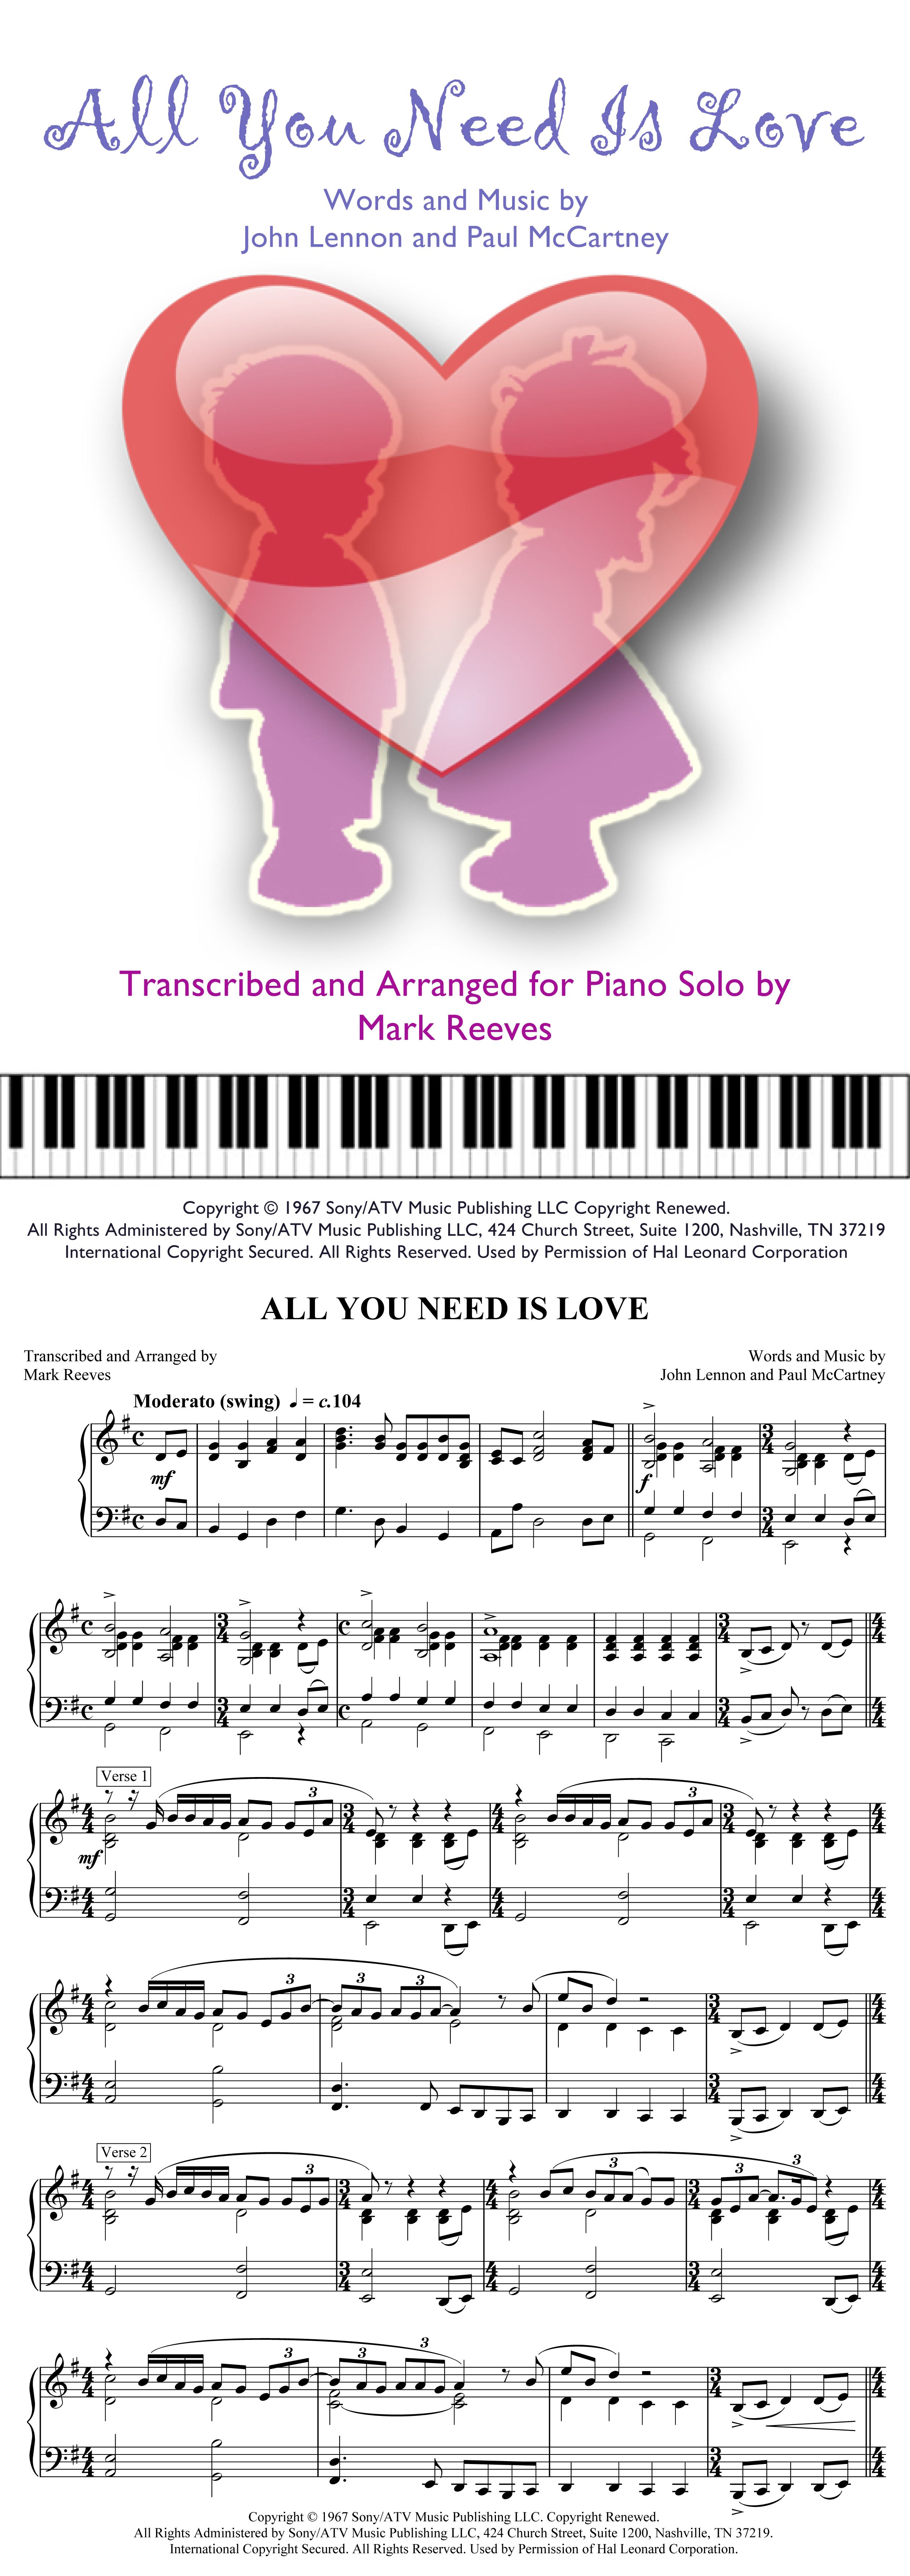 ALL YOU NEED IS LOVE transcribed for intermediate piano